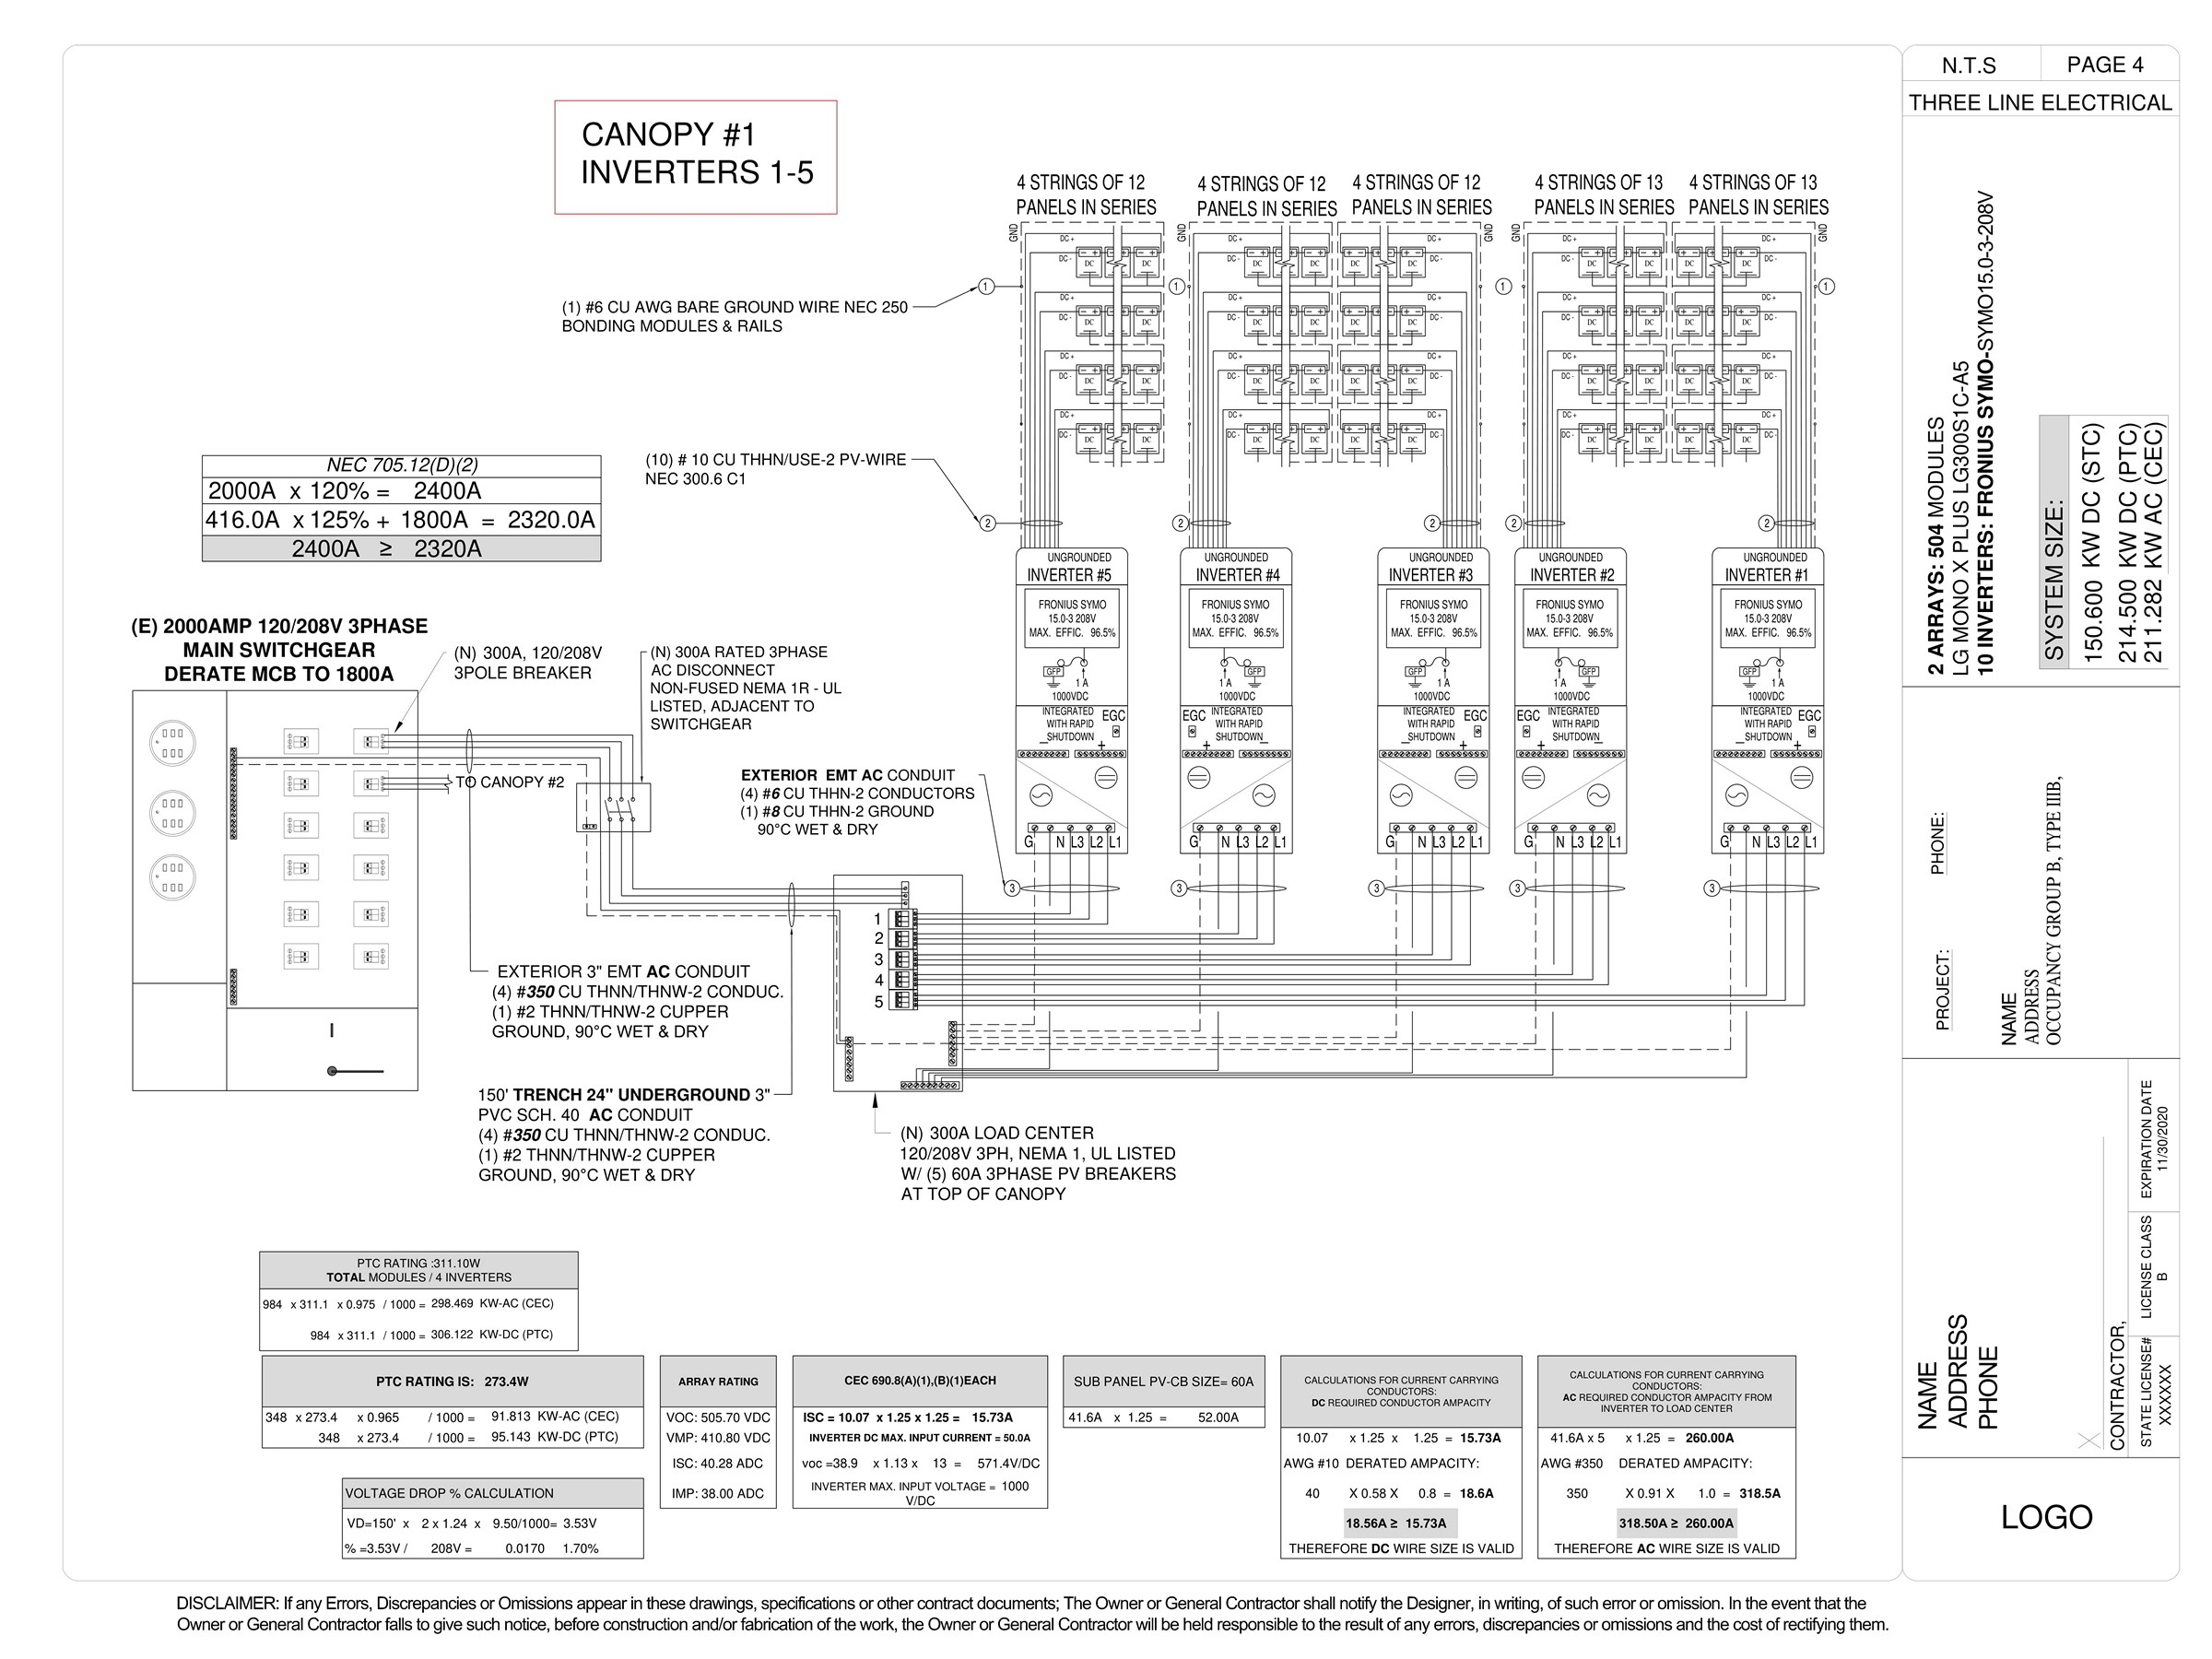 Commercial Canopy-04